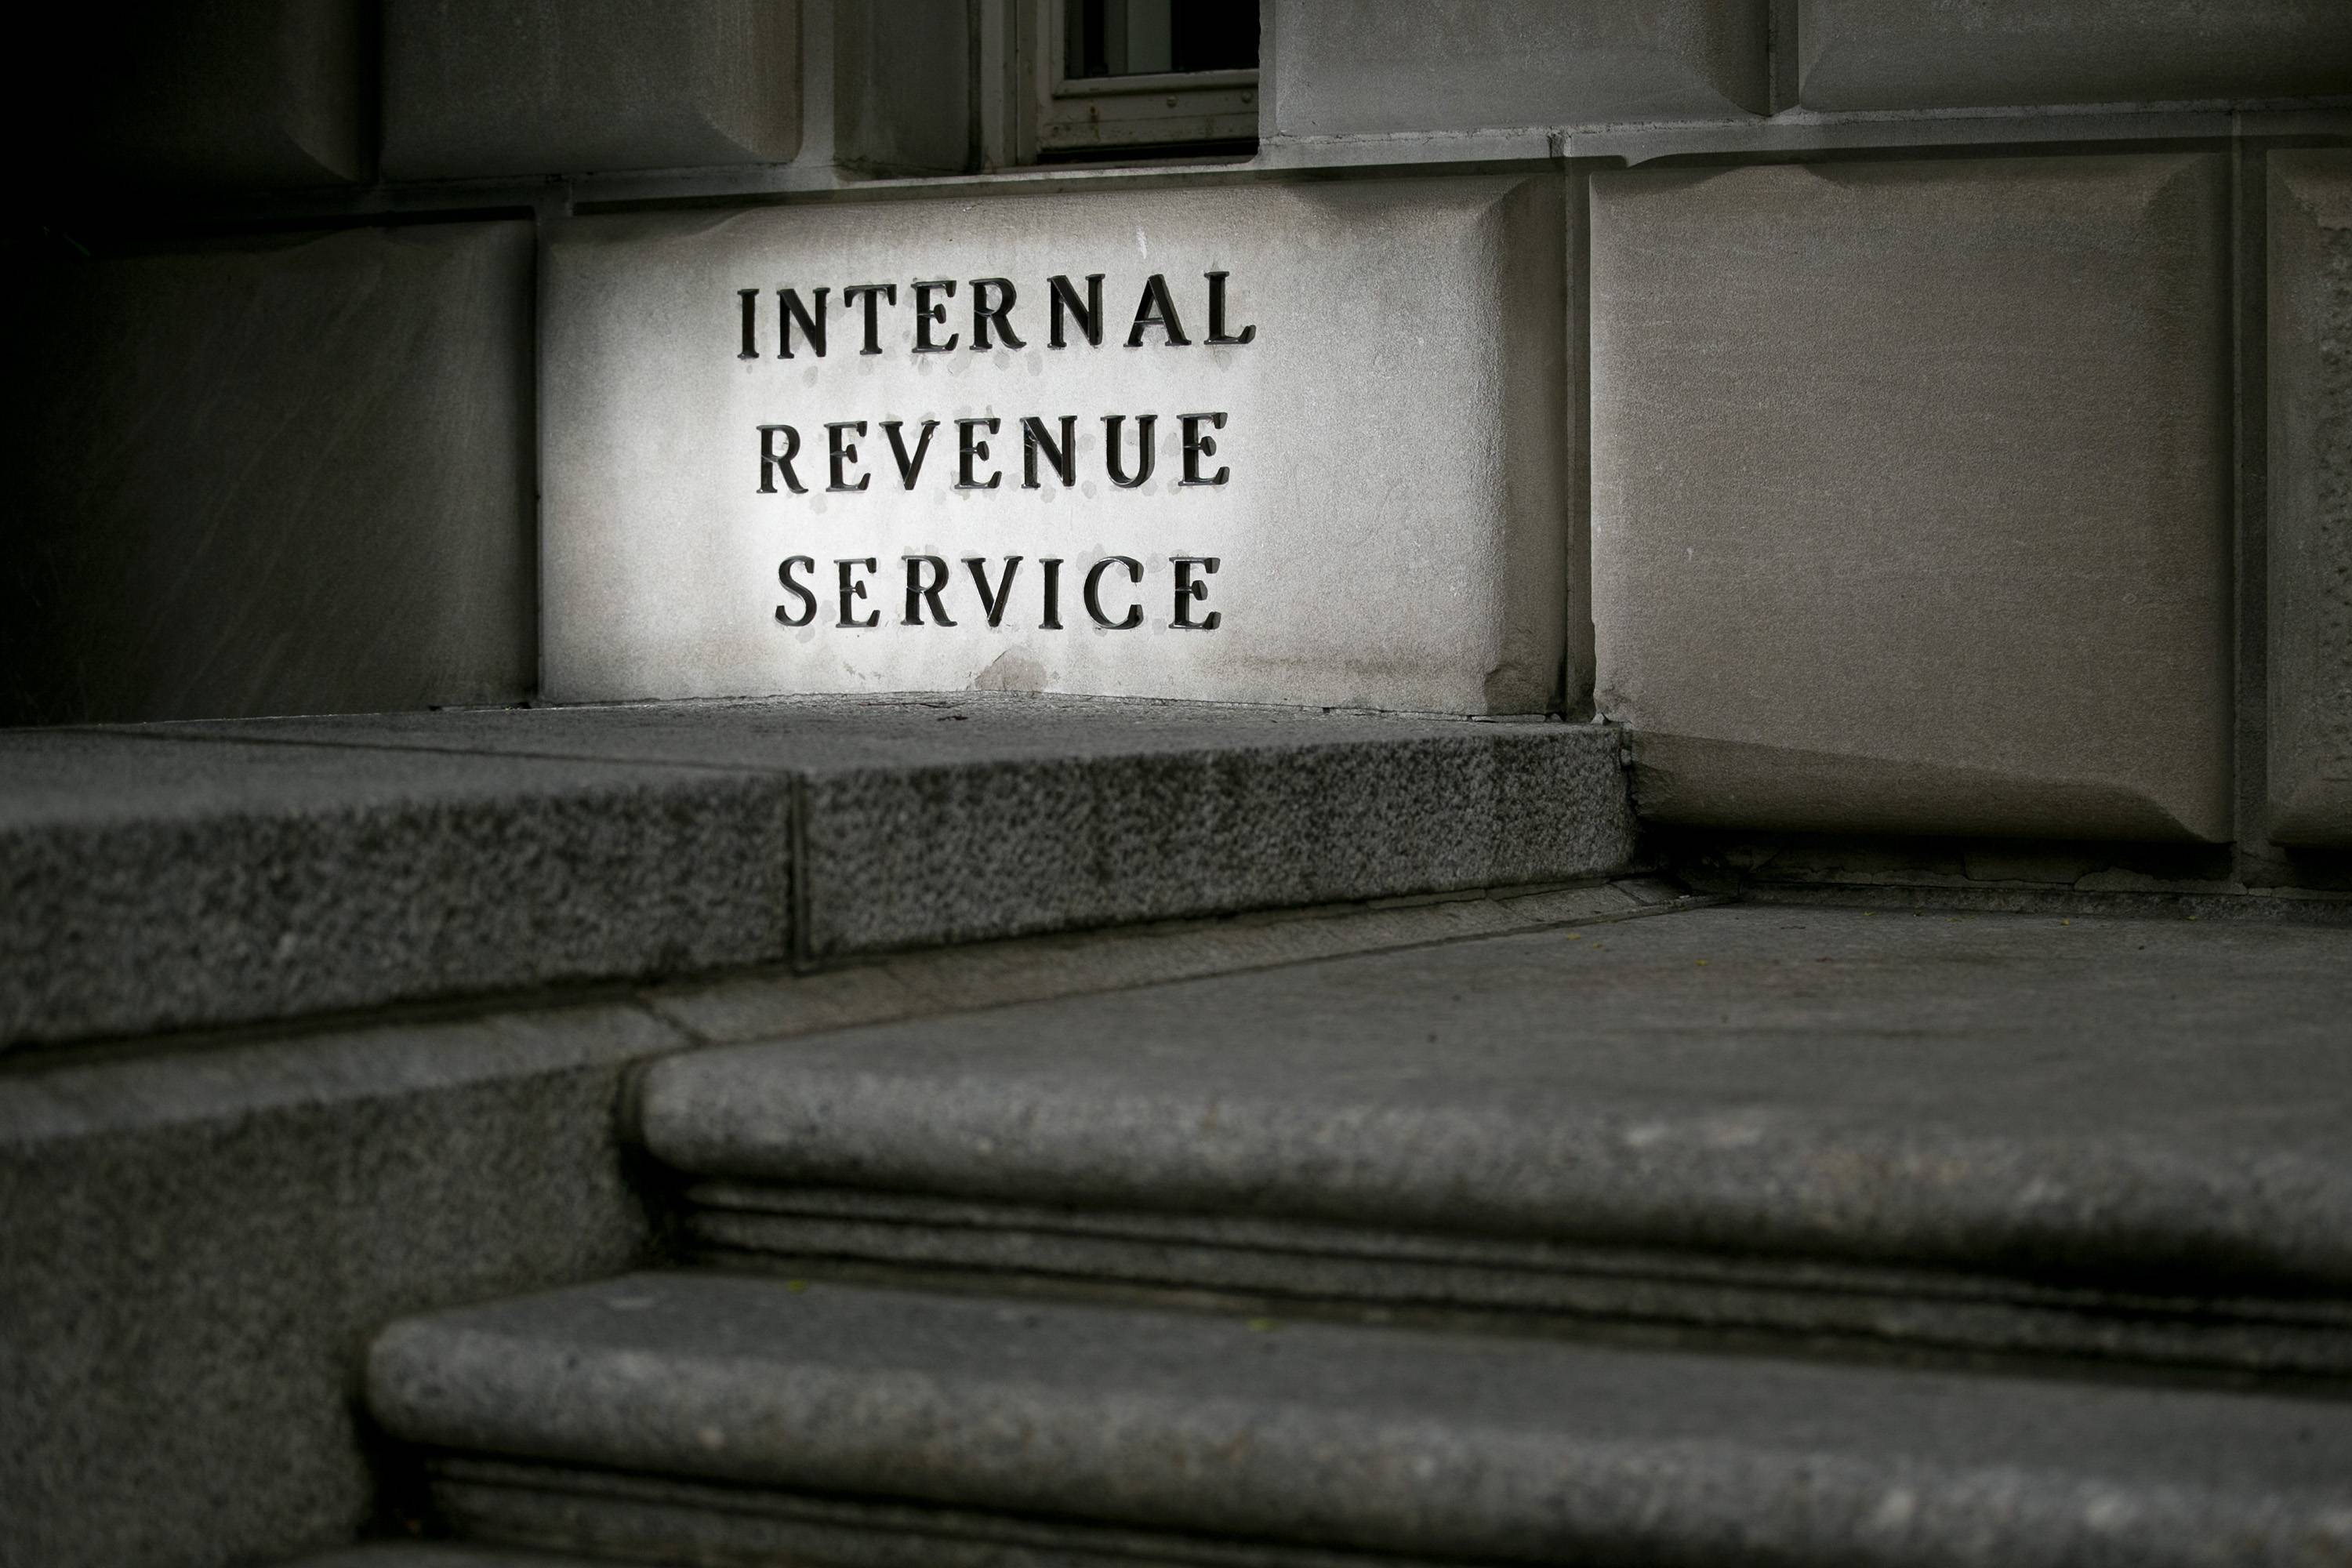 The Internal Revenue Service (IRS) headquarters stands in Washington, D.C.